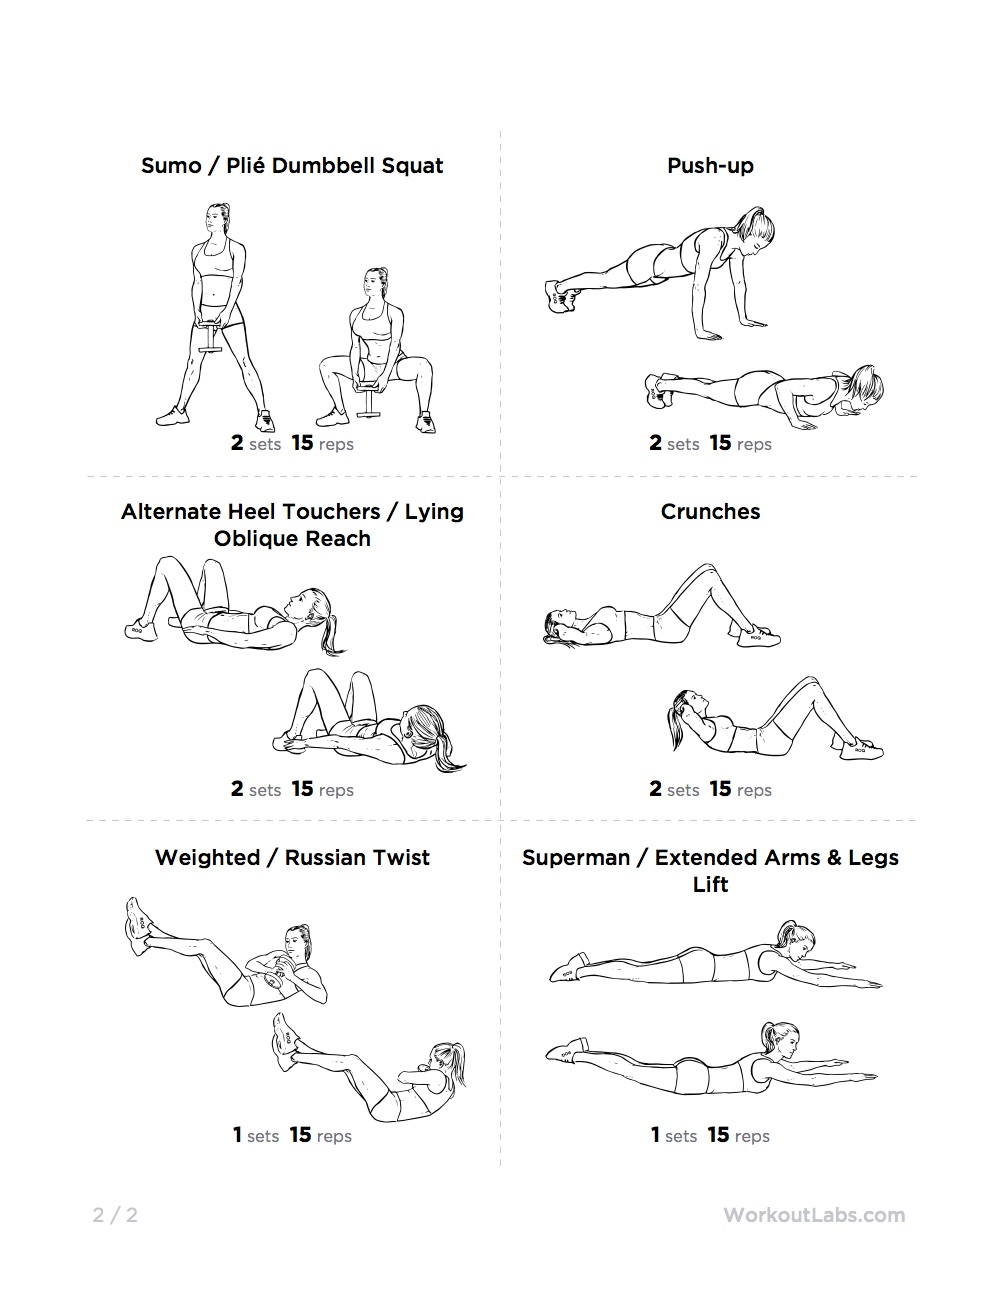 Essential Full Body Kettlebell Printable Workout For Men Women